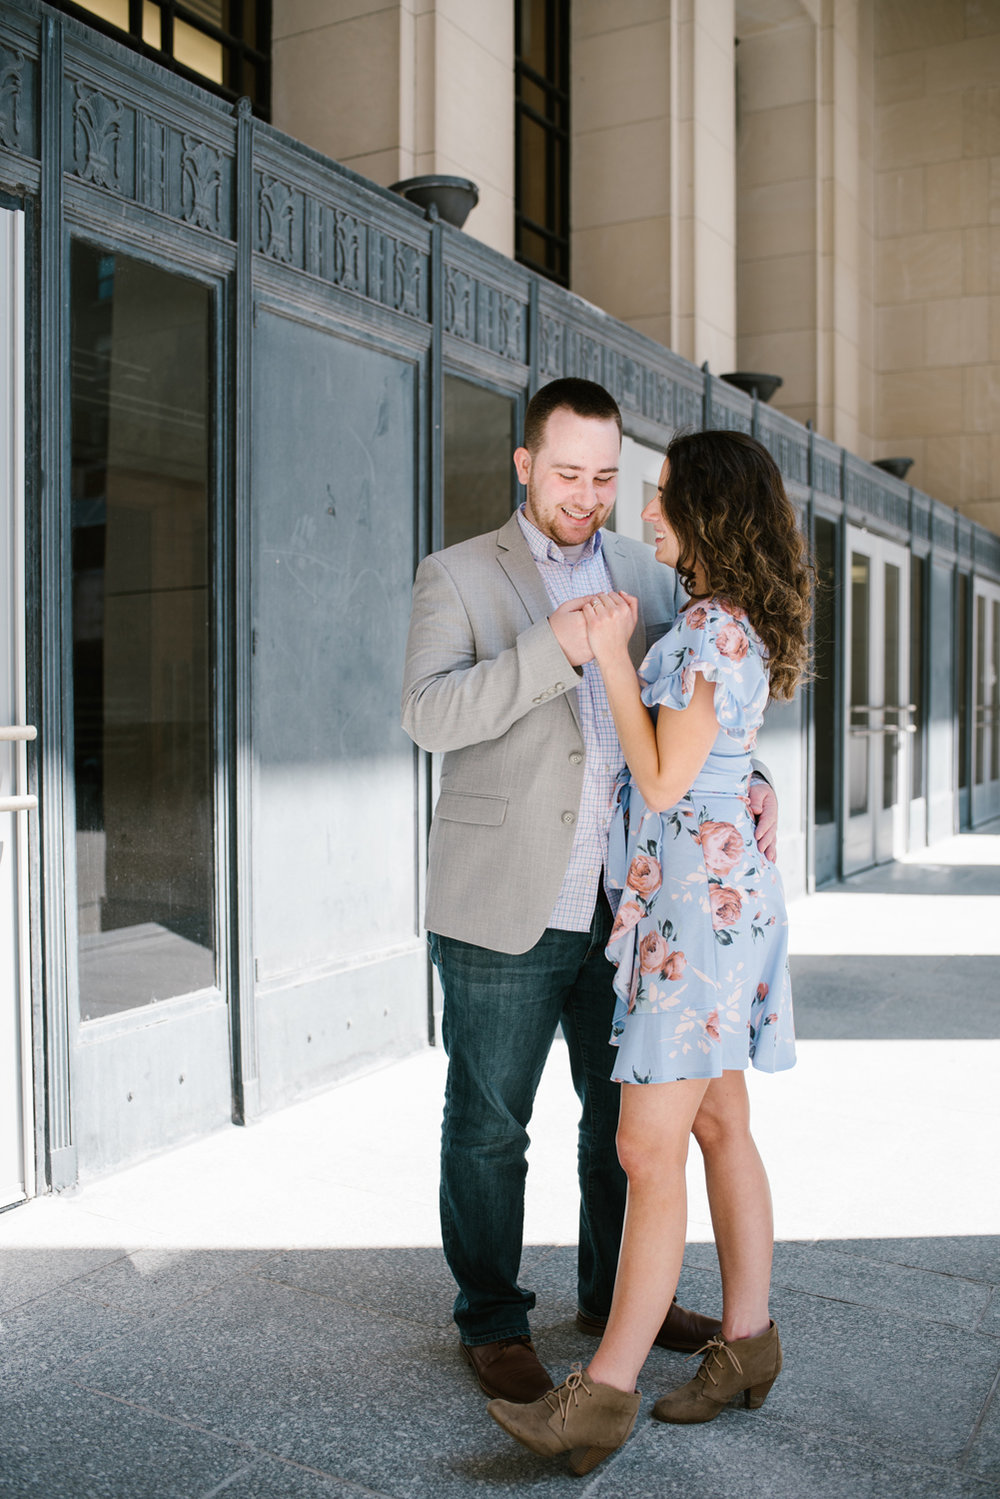 downtown-grand-rapids-michigan-engagement-photographer-spring-sydney-marie (102).jpg